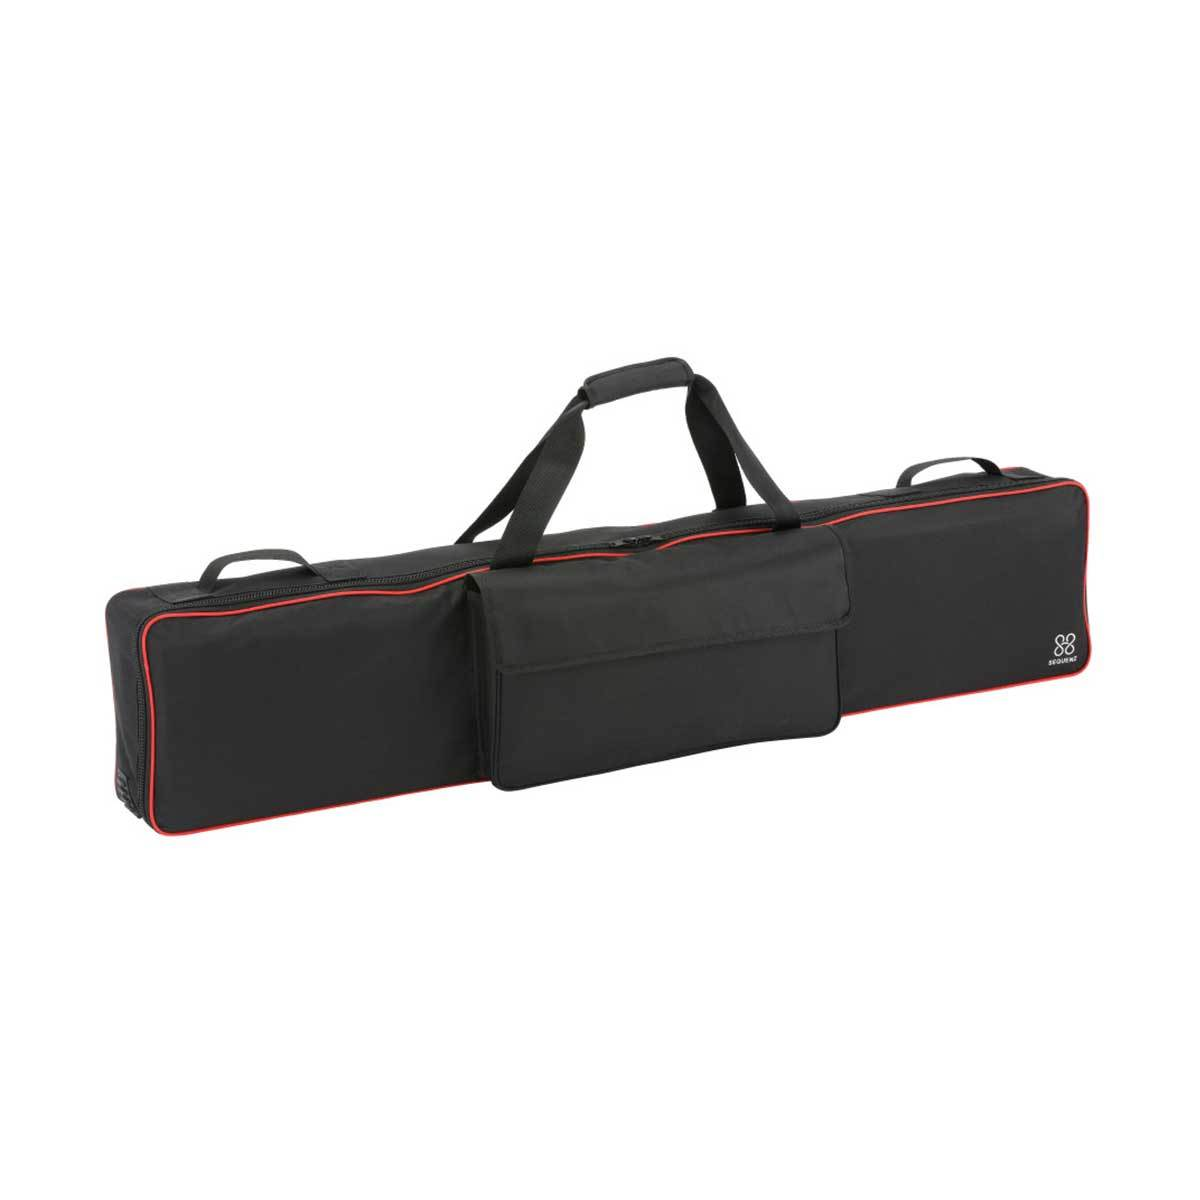 DJ Bags & Cases - Sequenz Soft Case For Korg D1 Black